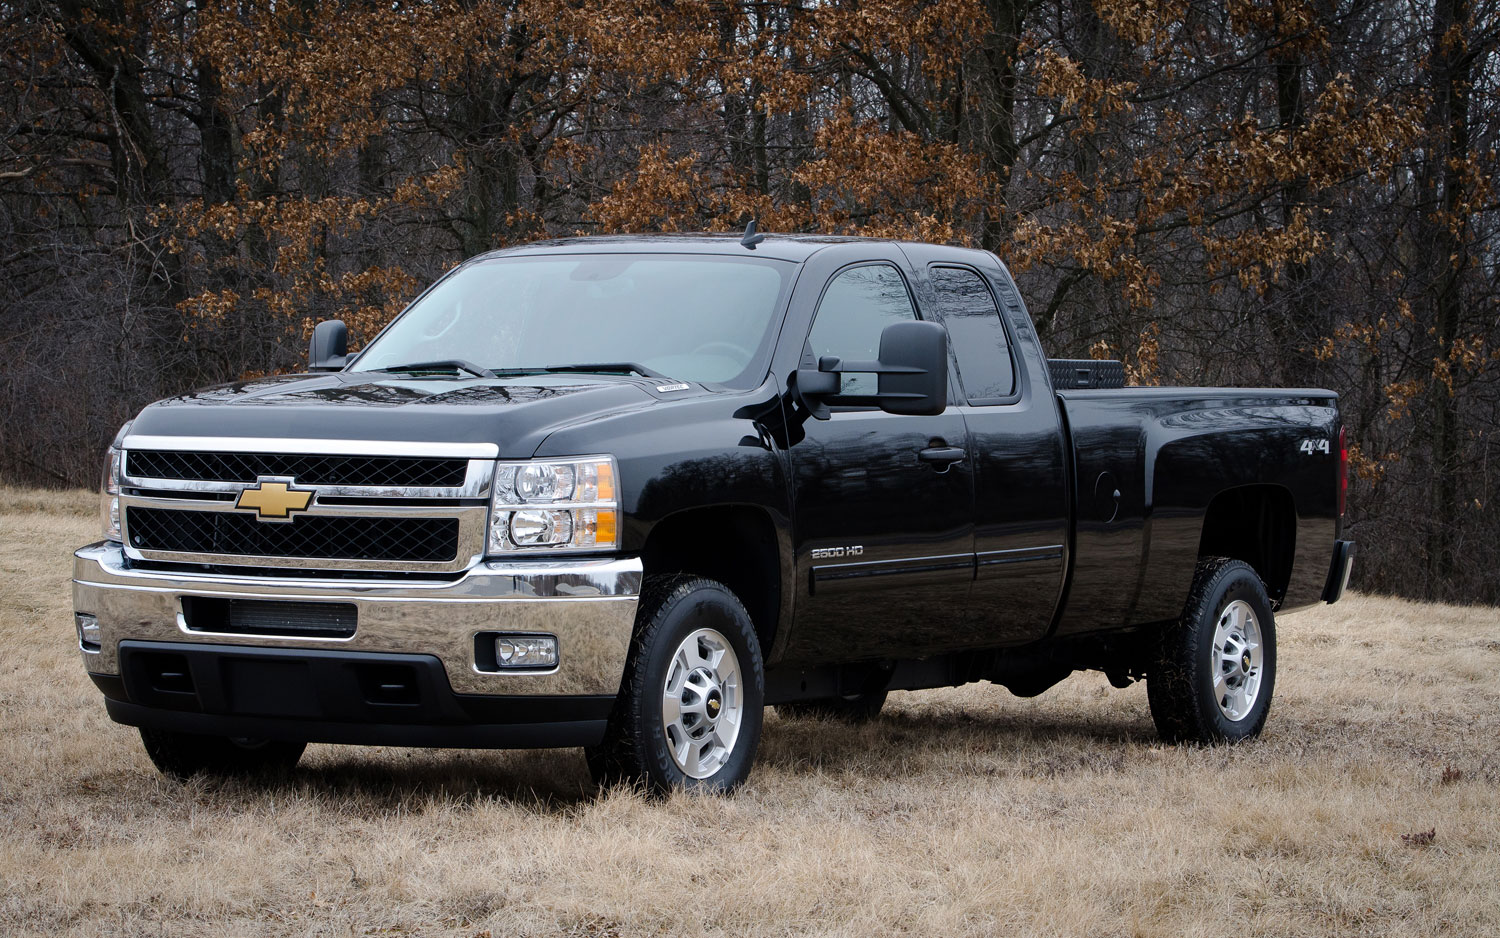 2013 chevy silverado gmc sierra hd gain bi fuel cng option. Black Bedroom Furniture Sets. Home Design Ideas